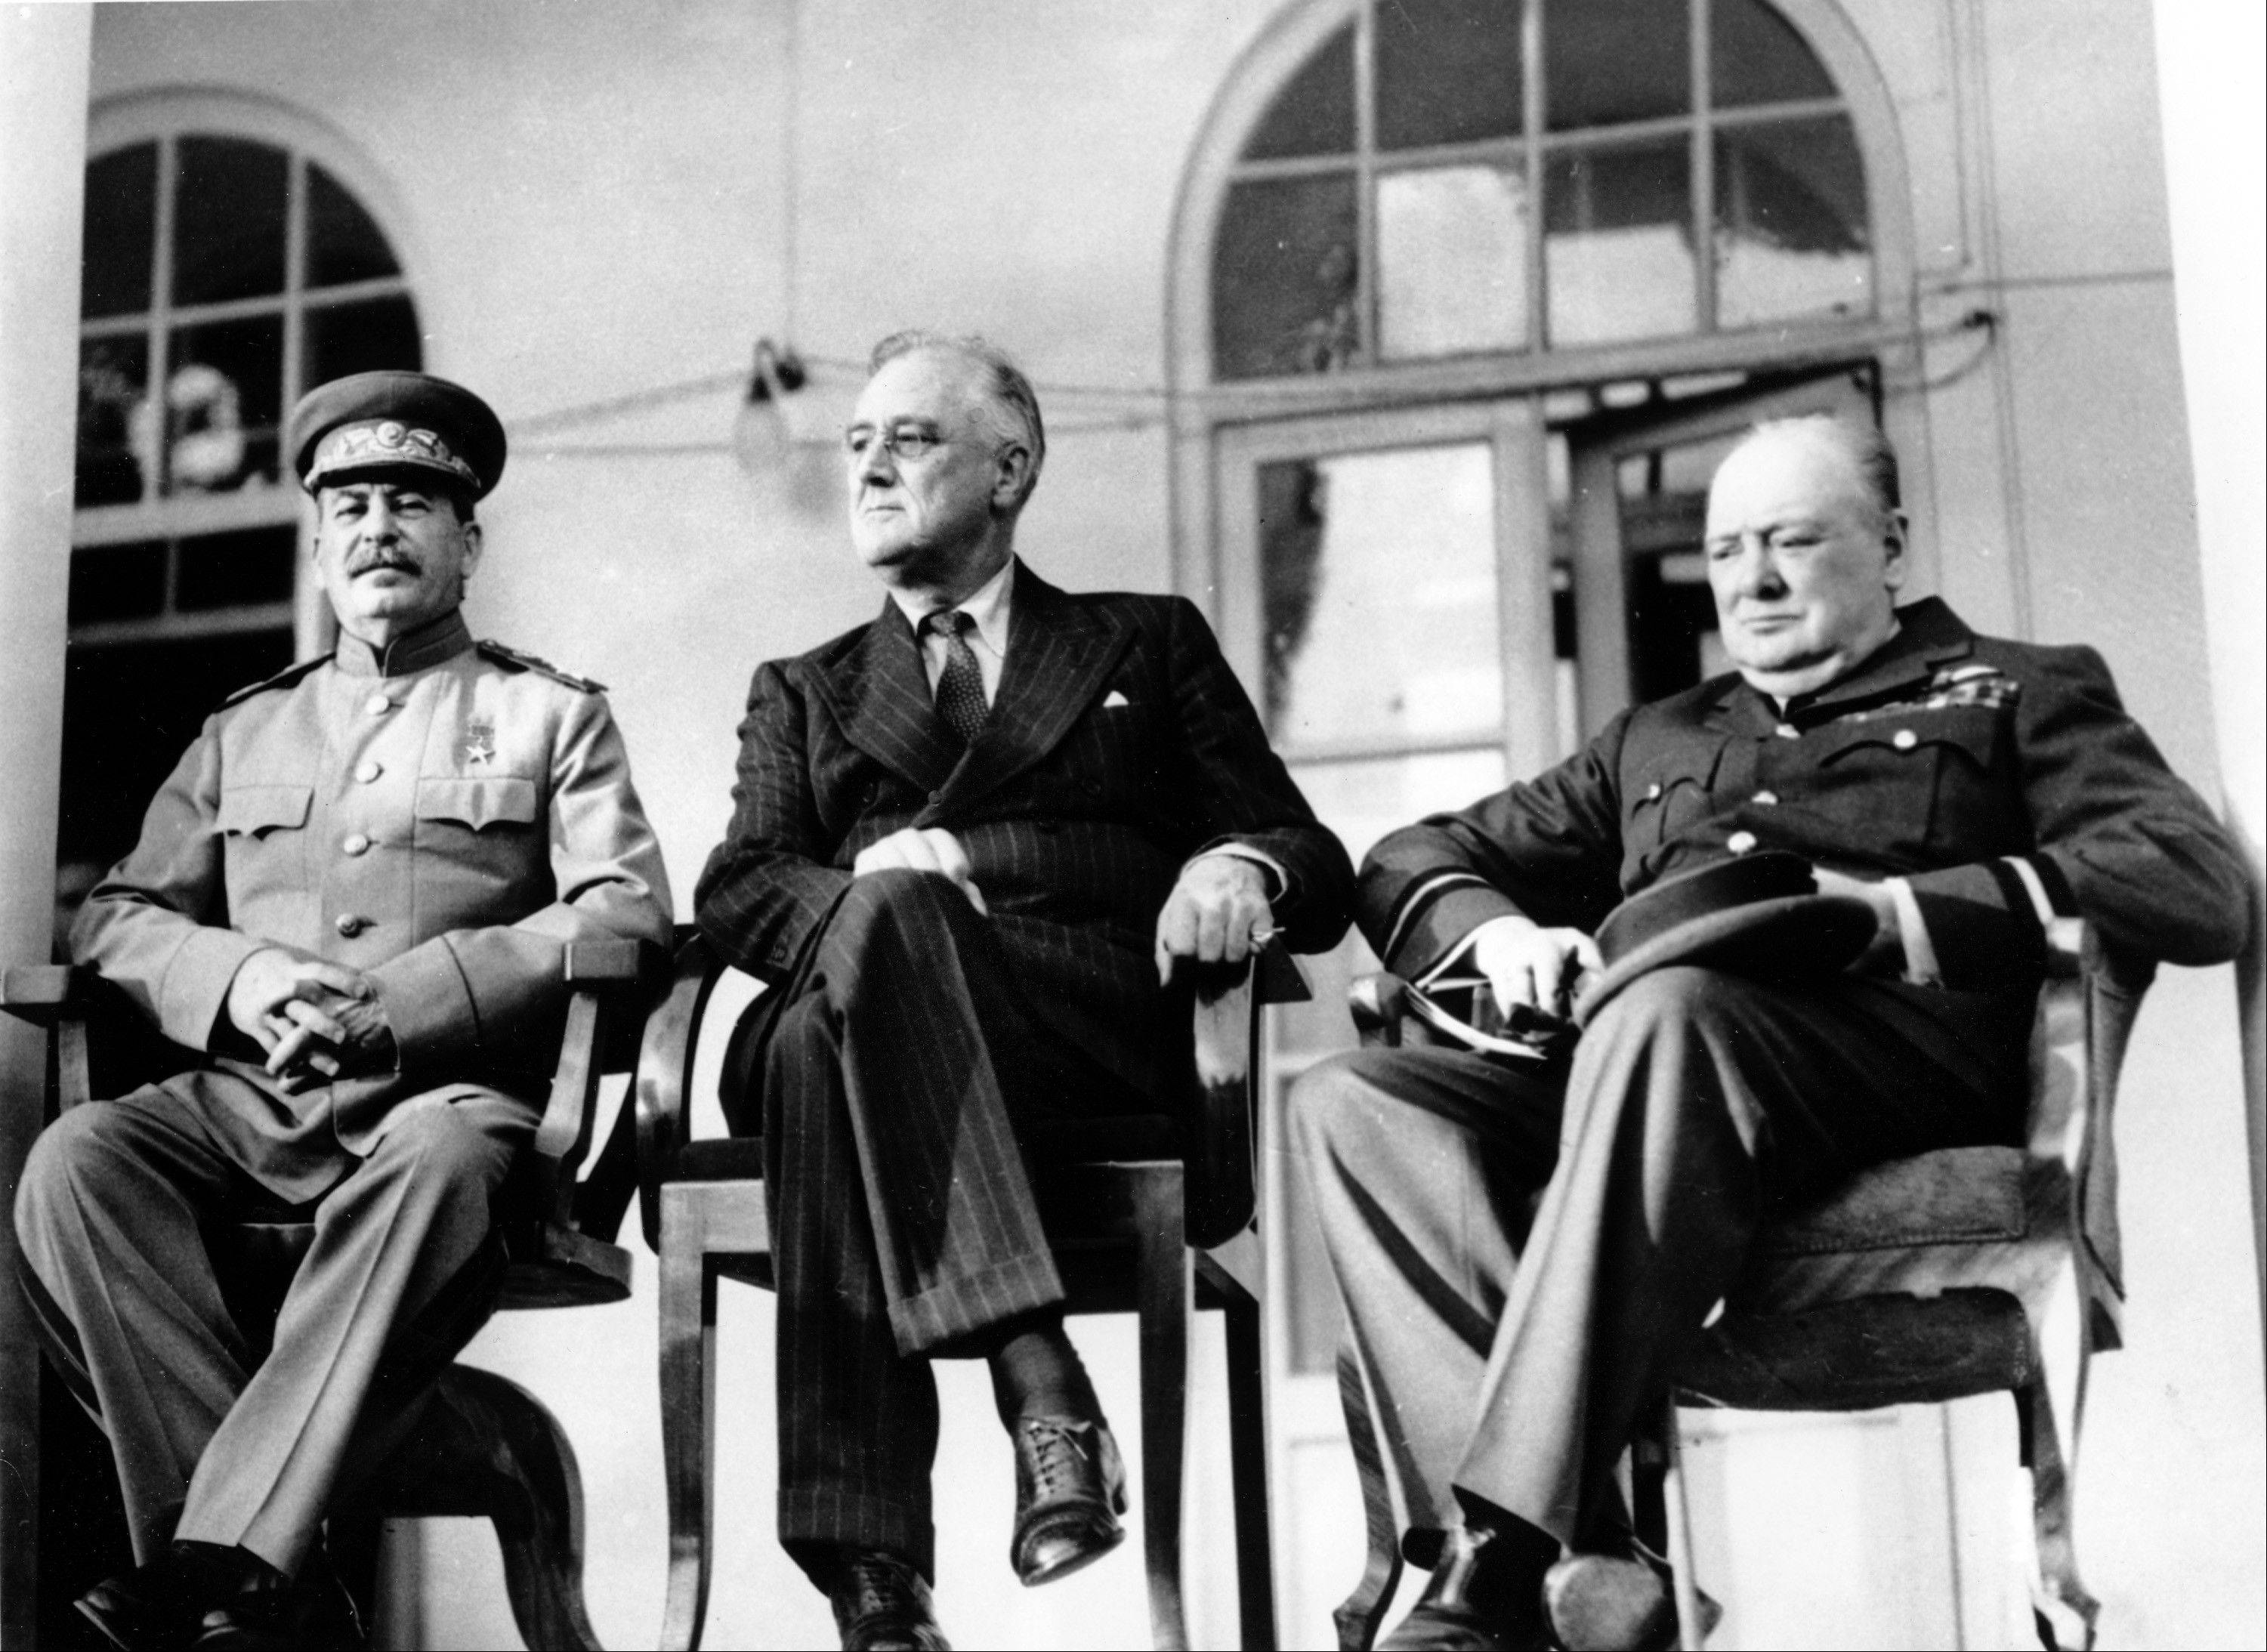 In this Nov. 28, 1943, file photo, Soviet Union Premier Josef Stalin, U.S. President Franklin D. Roosevelt, center, and British Prime Minister Winston Churchill sit together during the Tehran Conference in Tehran, Iran. The three leaders, meeting for the first time, discussed Allied plans for the war against Germany and for postwar cooperation in the United Nations.